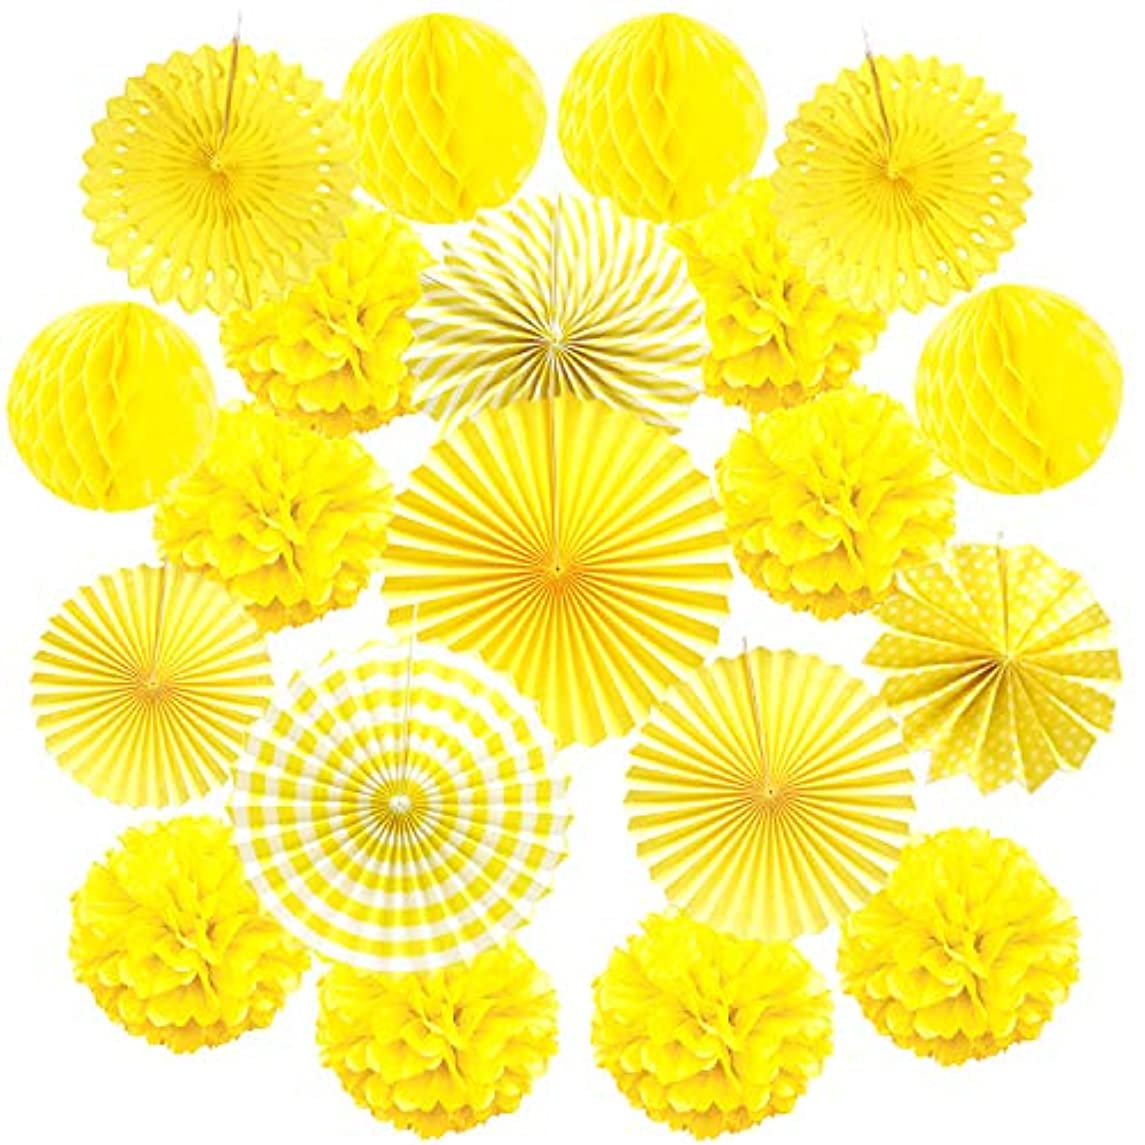 Cocodeko Hanging Paper Fan Set, Tissue Paper Pom Poms Flower Fan and Honeycomb Balls for Birthday Baby Shower Wedding Festival Decorations - Yellow